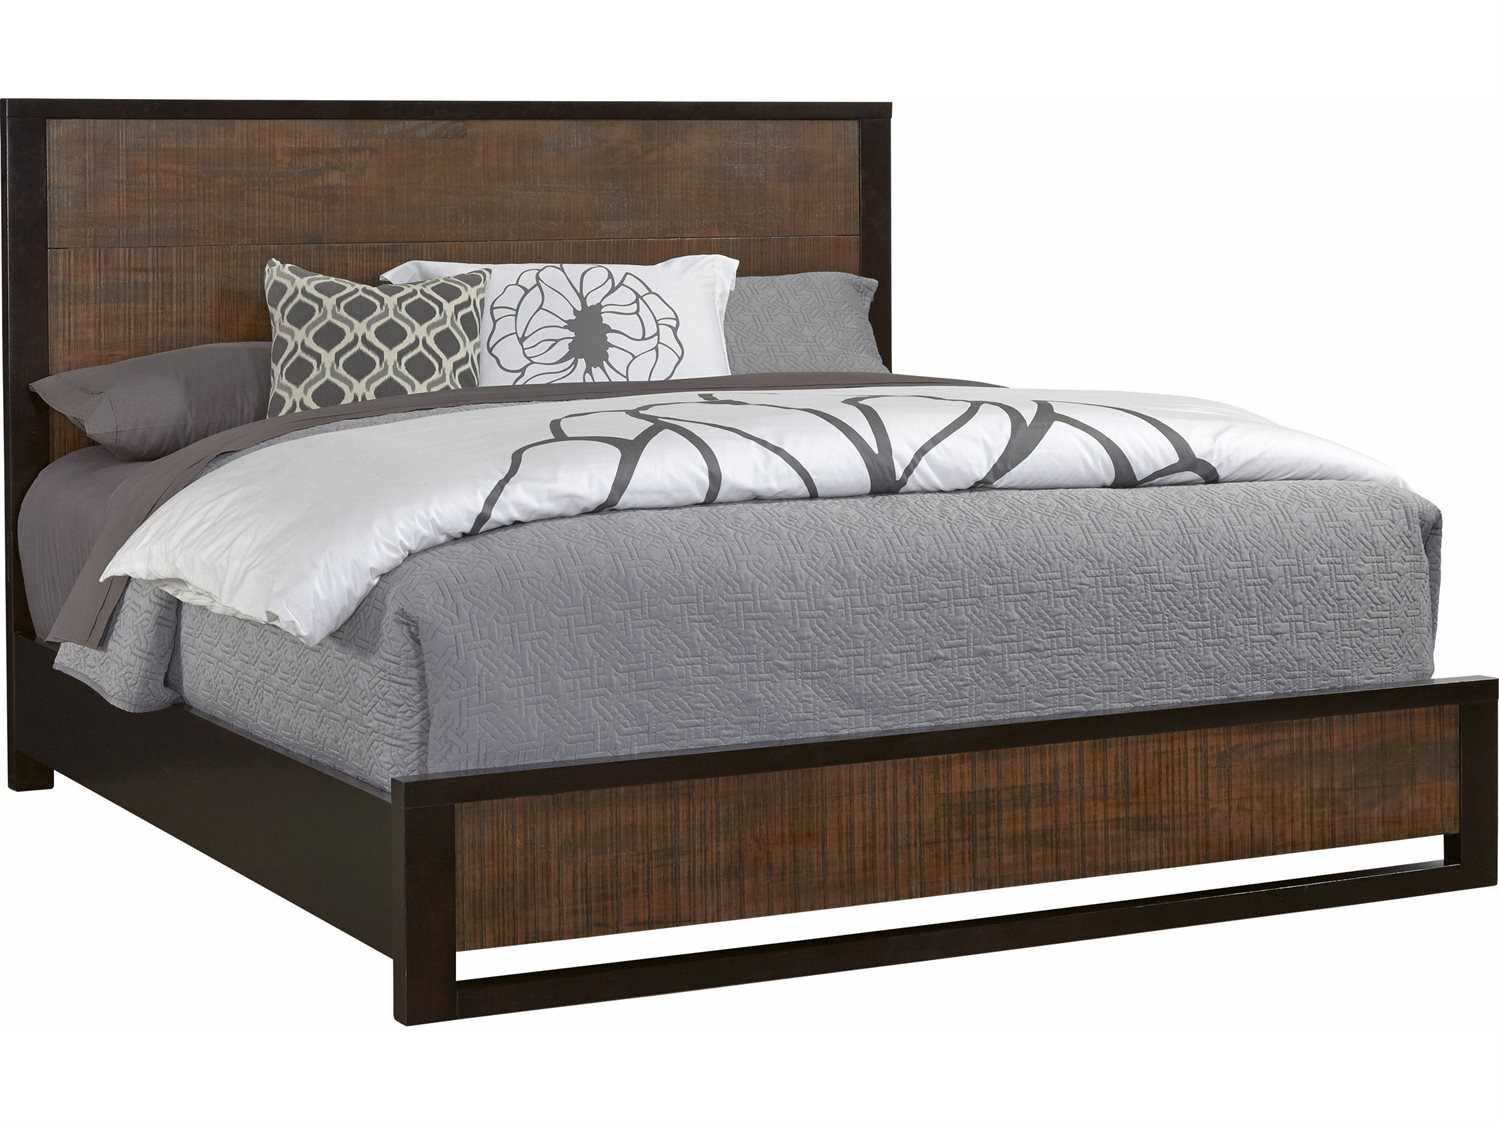 Casana Axel King Platform Panel Bed Cx265911kk